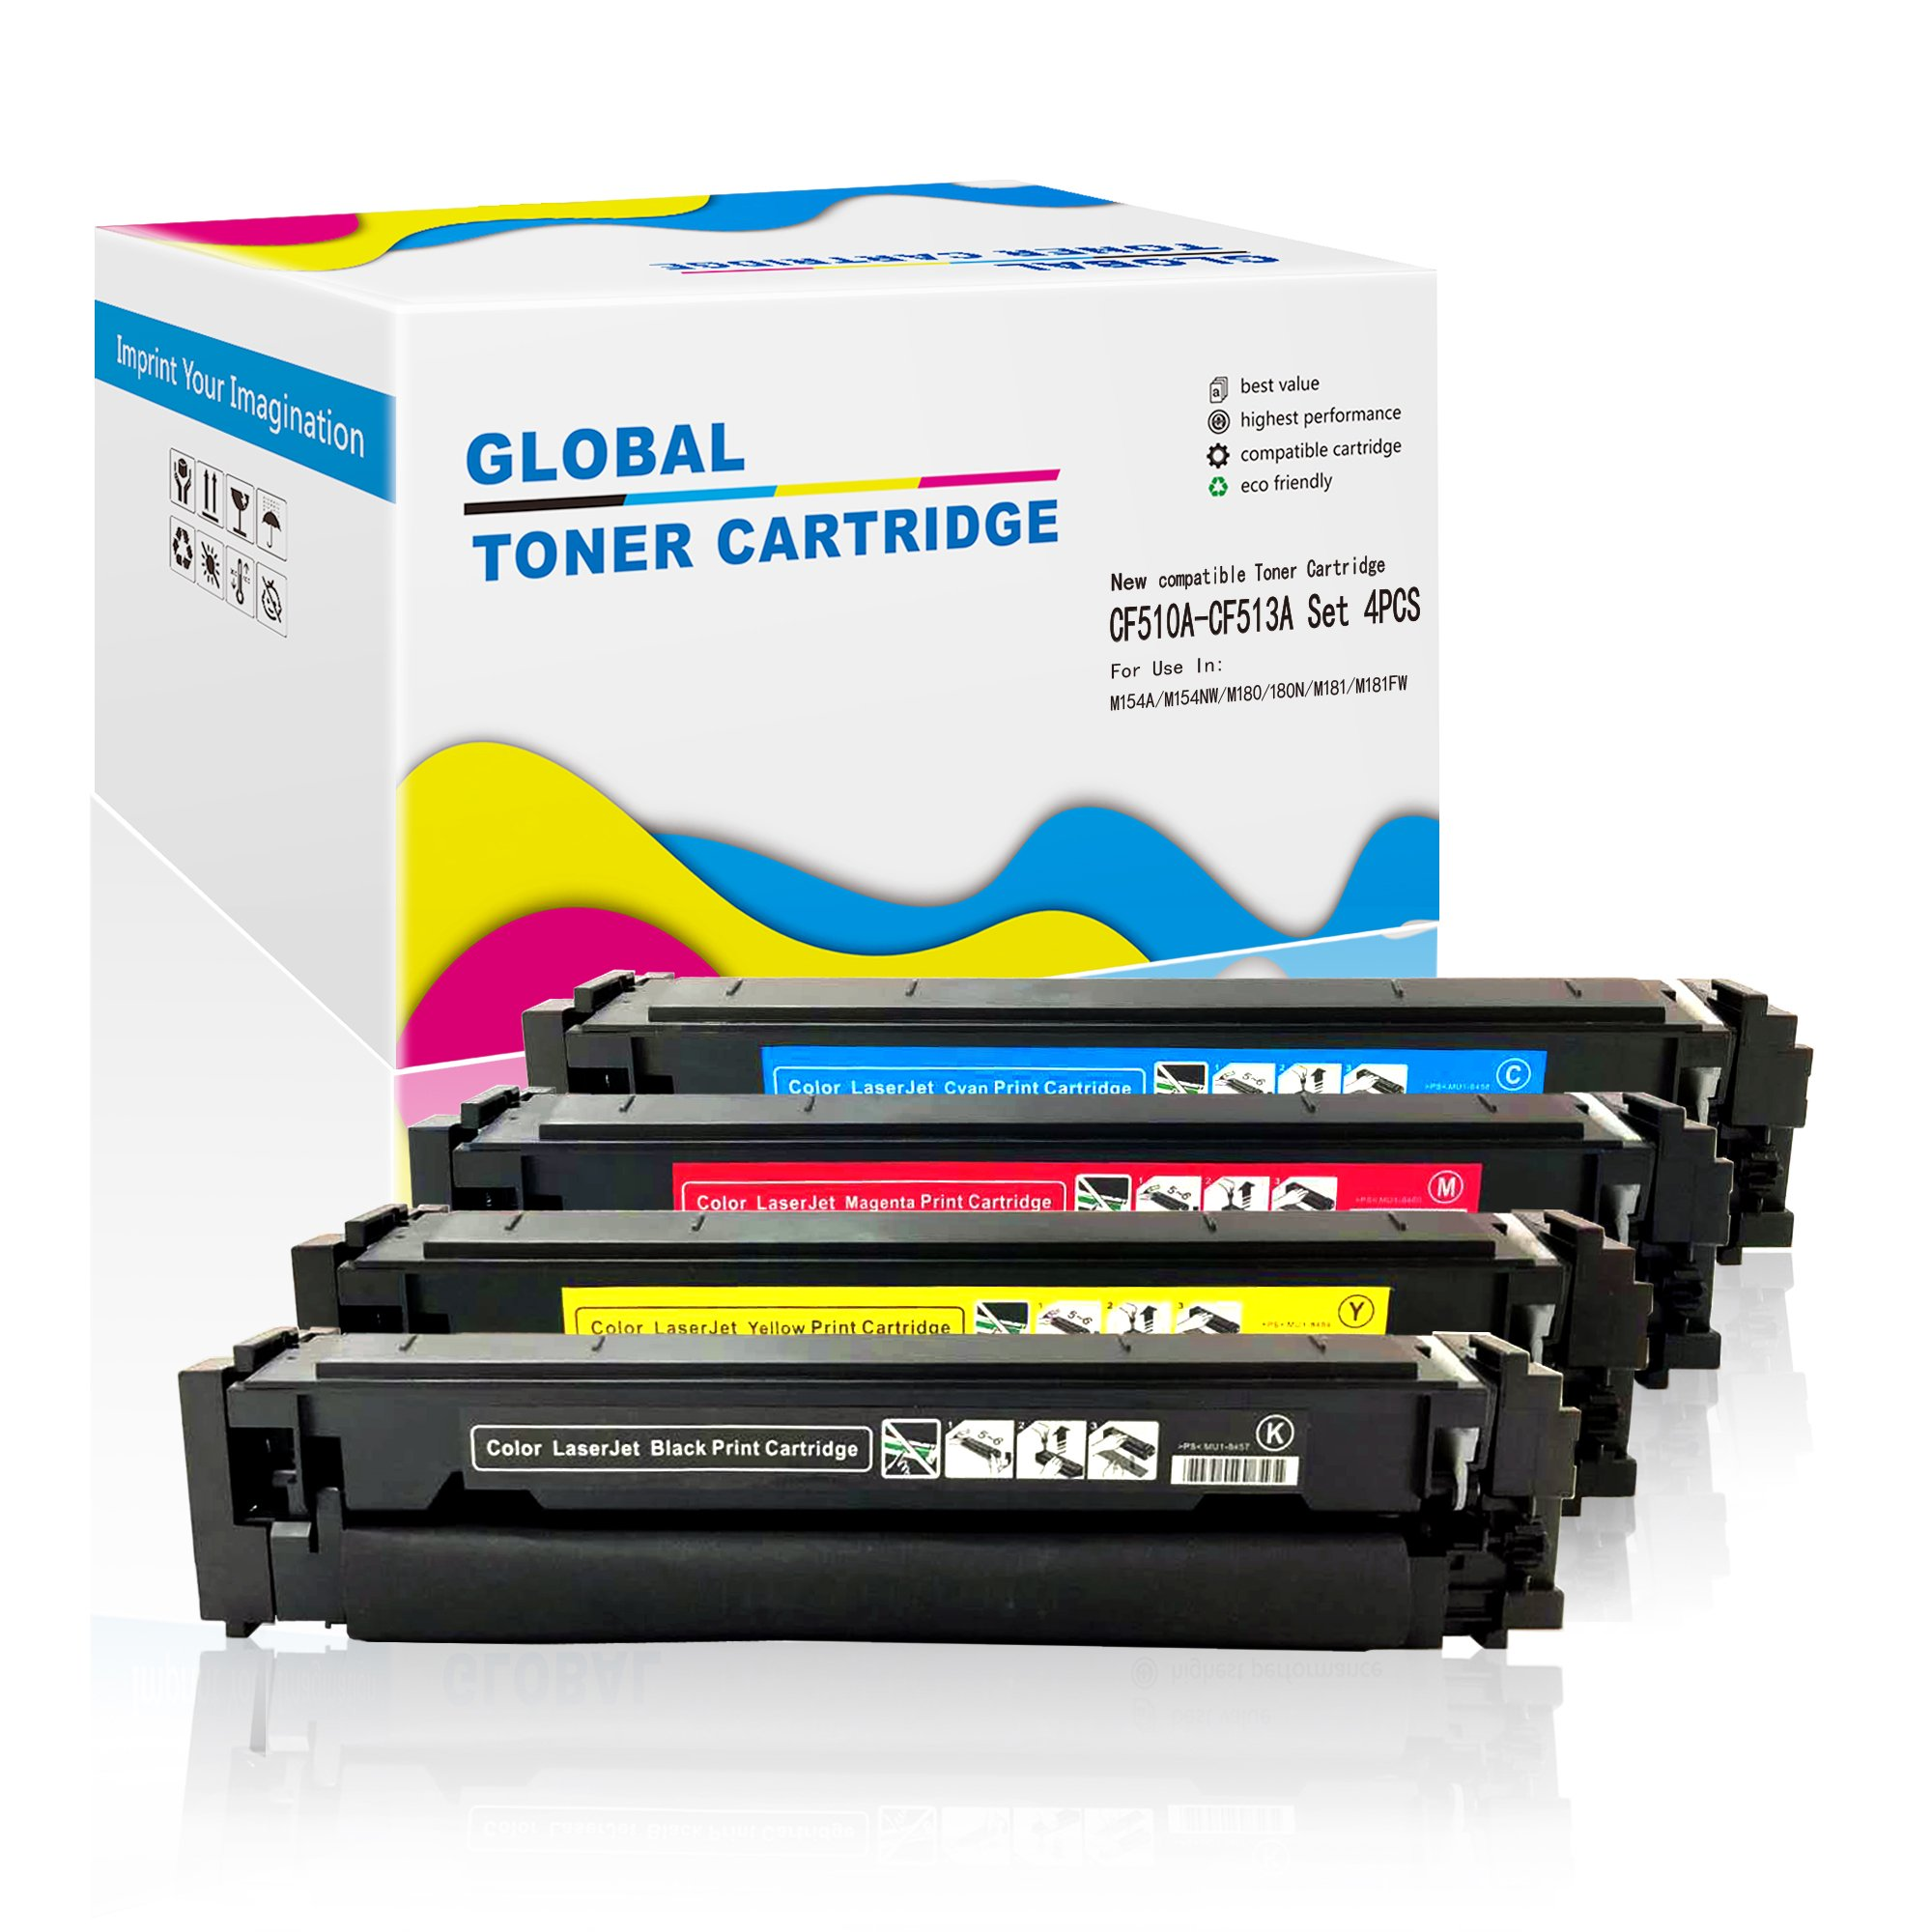 4 Pack New Compatible for HP 204A (CF510A/CF511A/CF512A/CF513A) Color Toner Cartridge with Chip ready for use in LaserJet M154A, M154NW, M180, 180N, M181,M181FW series